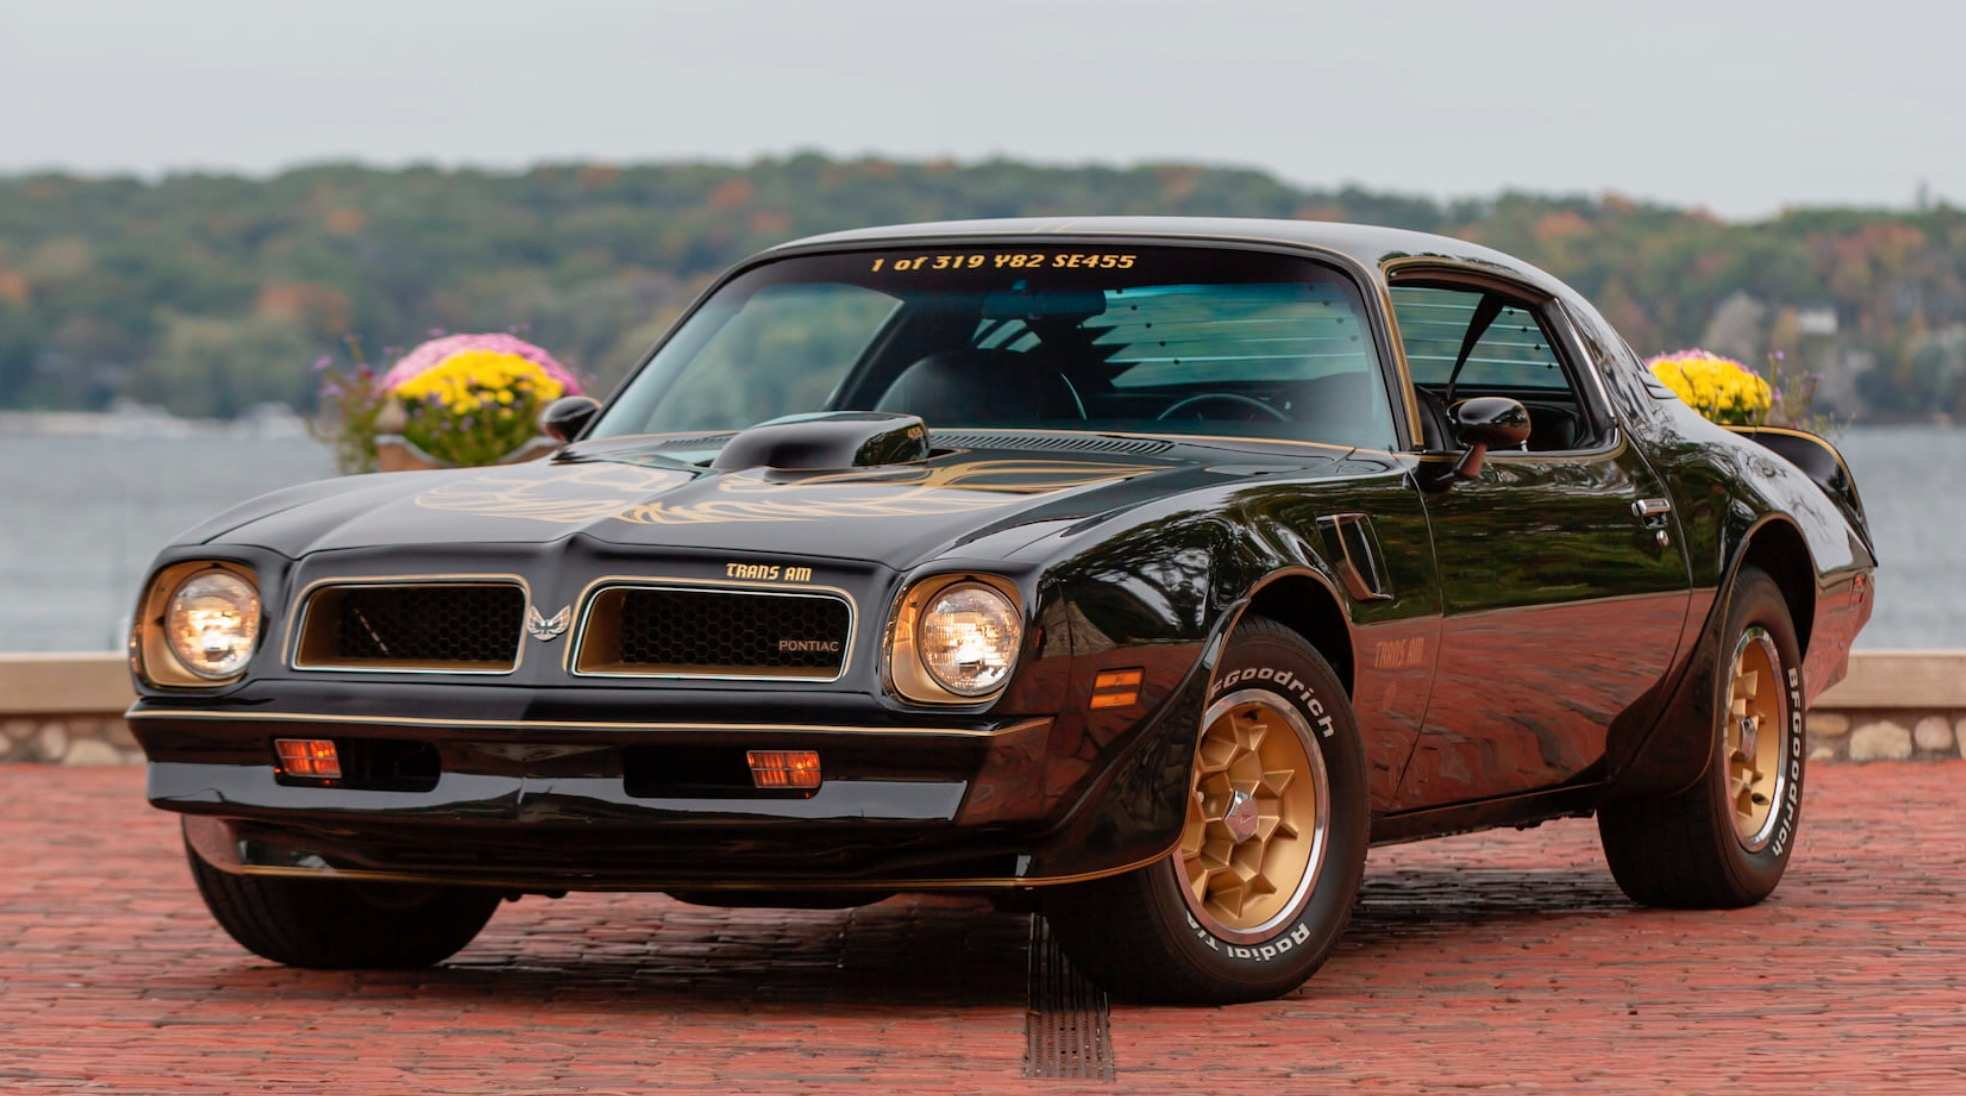 94 Great Pictures Of A Trans Am Prices by Pictures Of A Trans Am